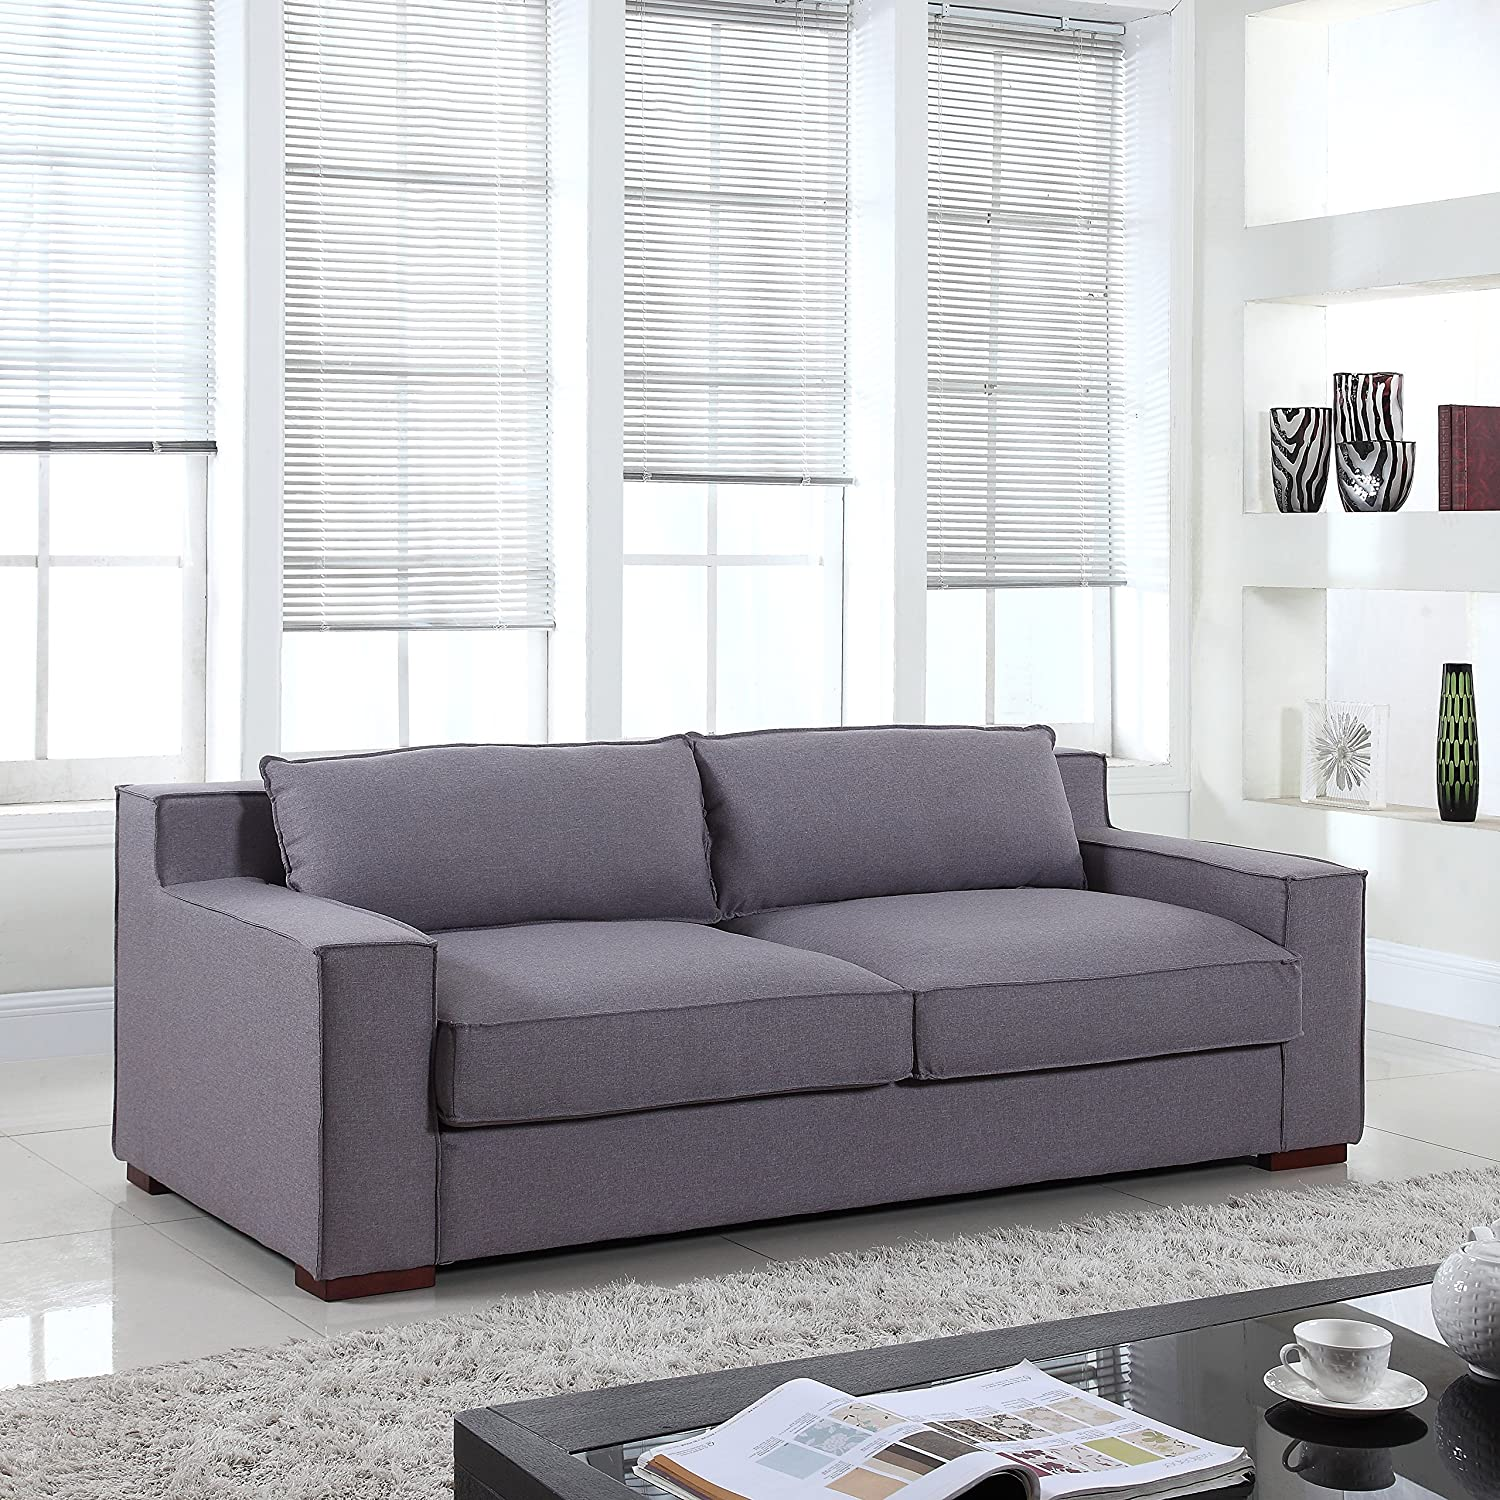 amazoncom divano roma furniture signature collection  modern capri linensofa with real goose feathers and wide track arm rests dark grey lightgrey . amazoncom divano roma furniture signature collection  modern